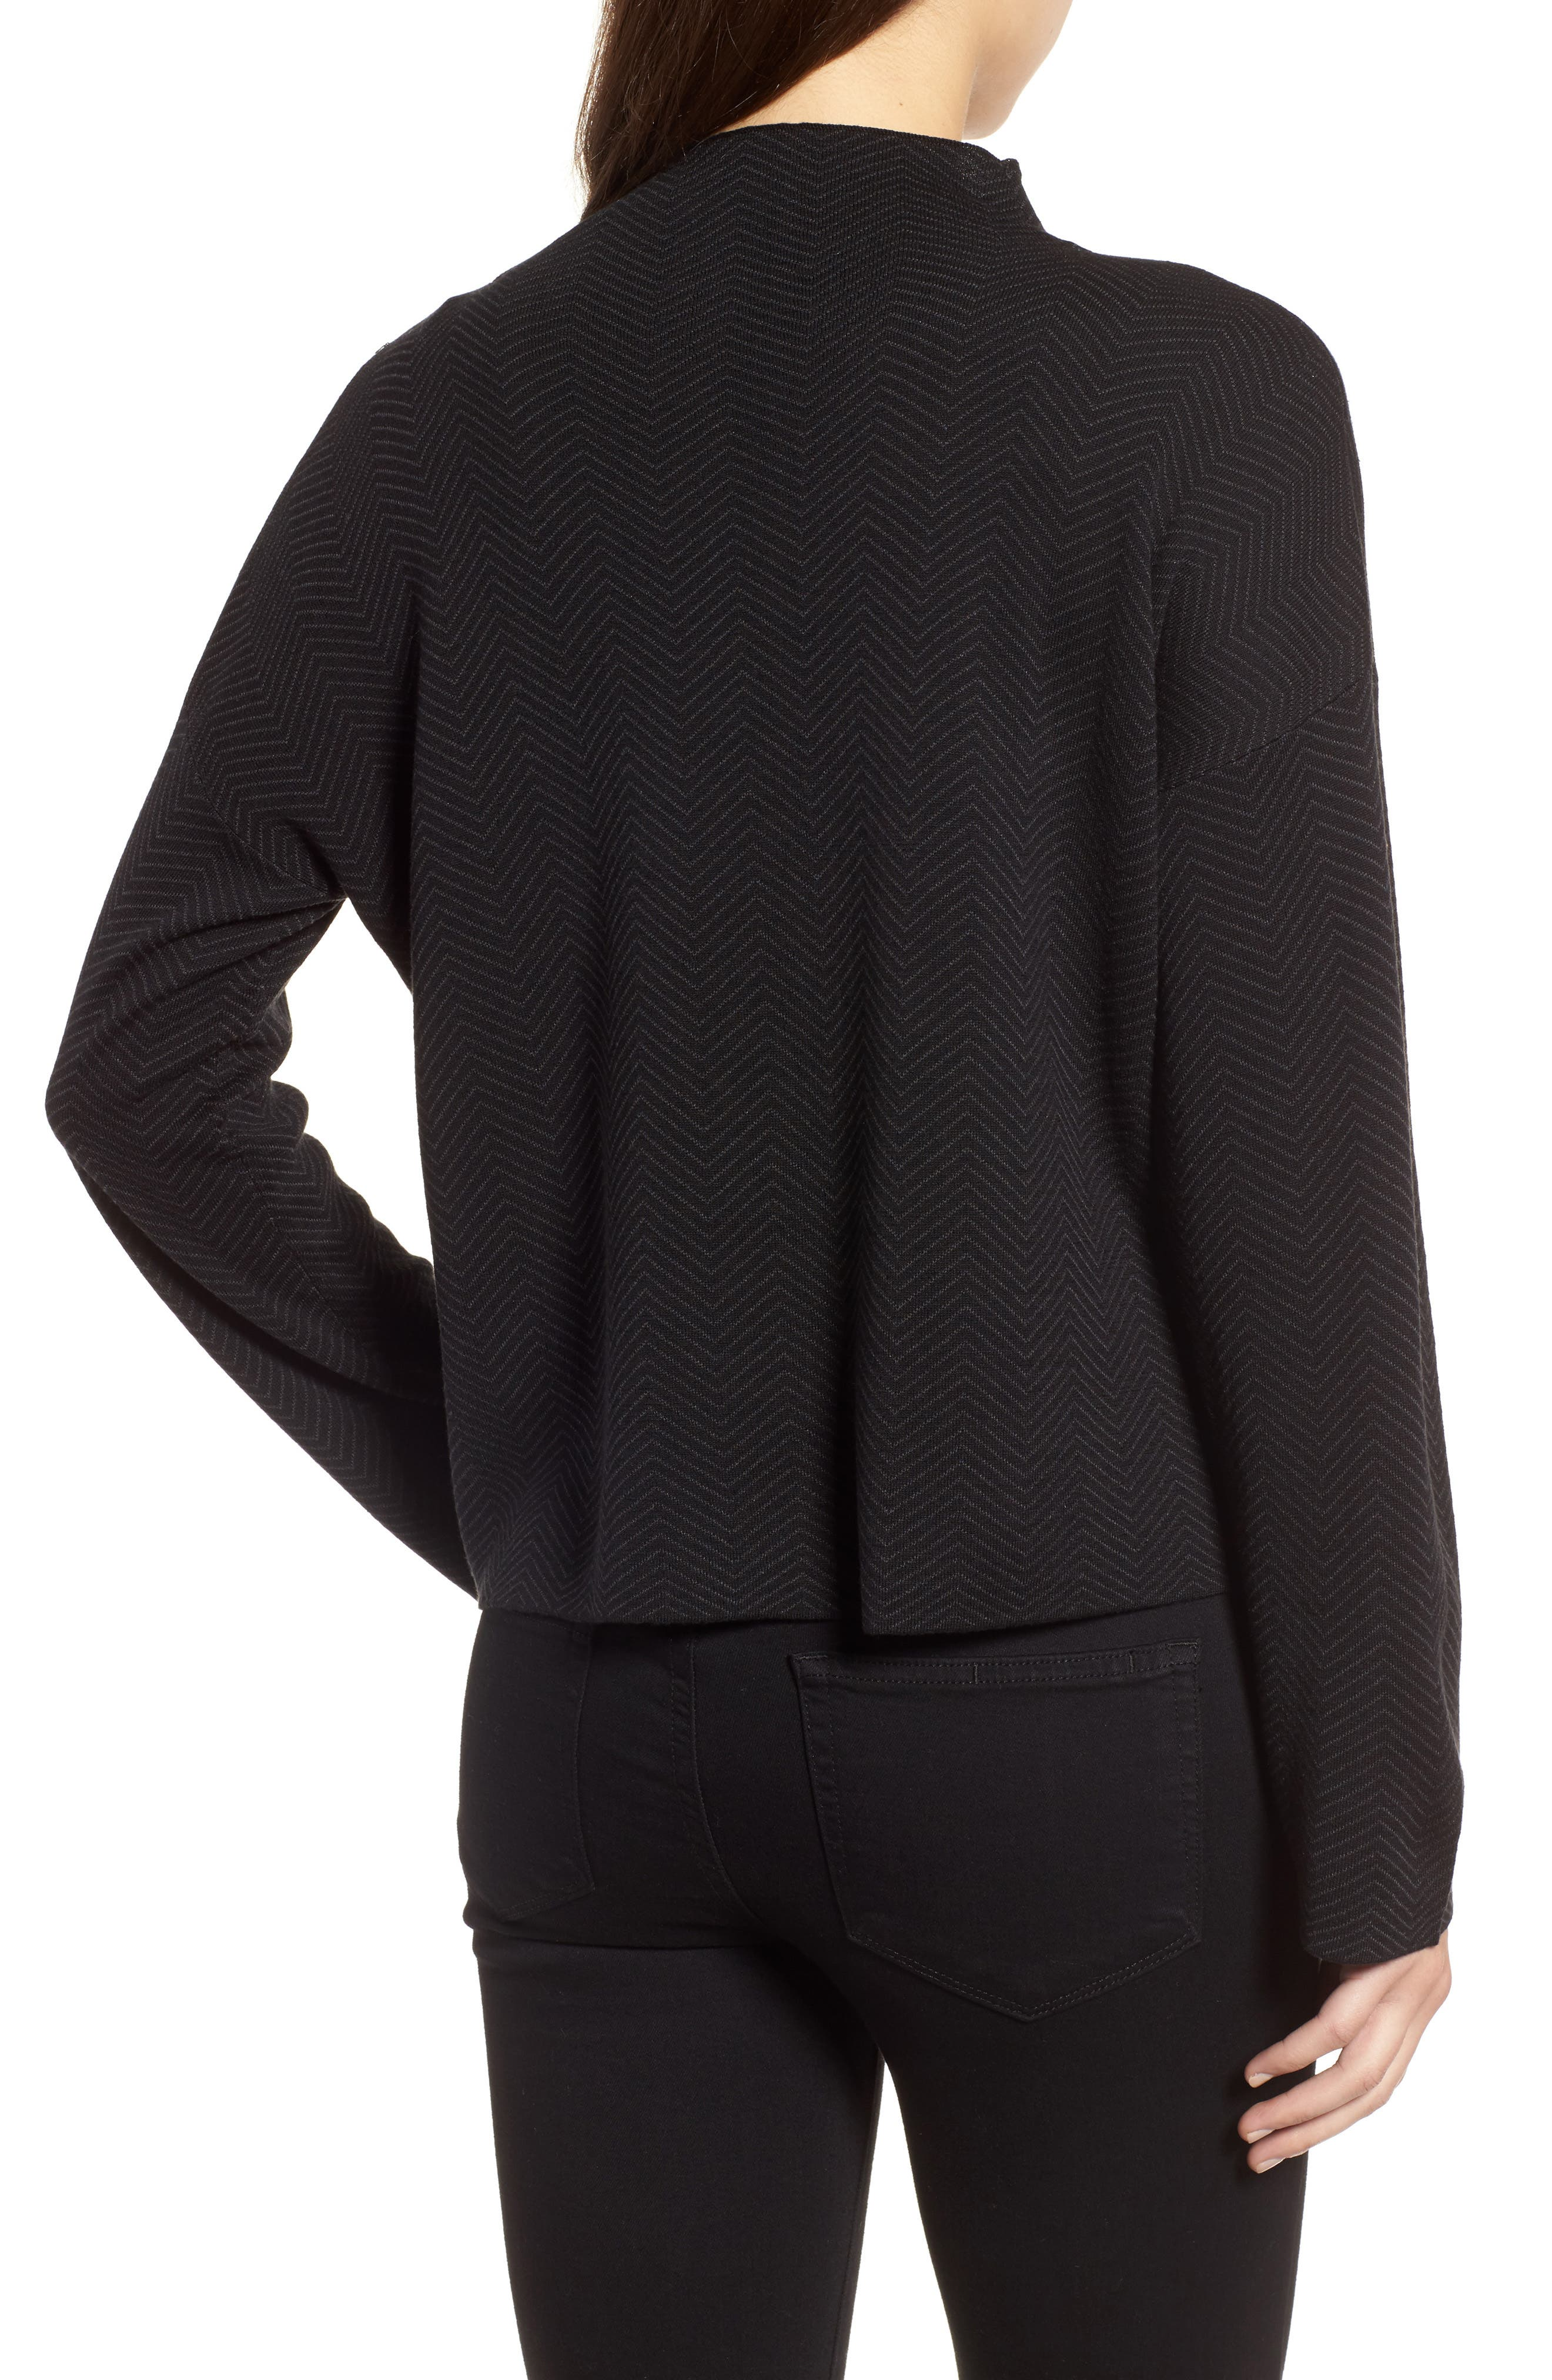 Silk & Organic Cotton Jacquard Top,                             Alternate thumbnail 2, color,                             Black Charcoal